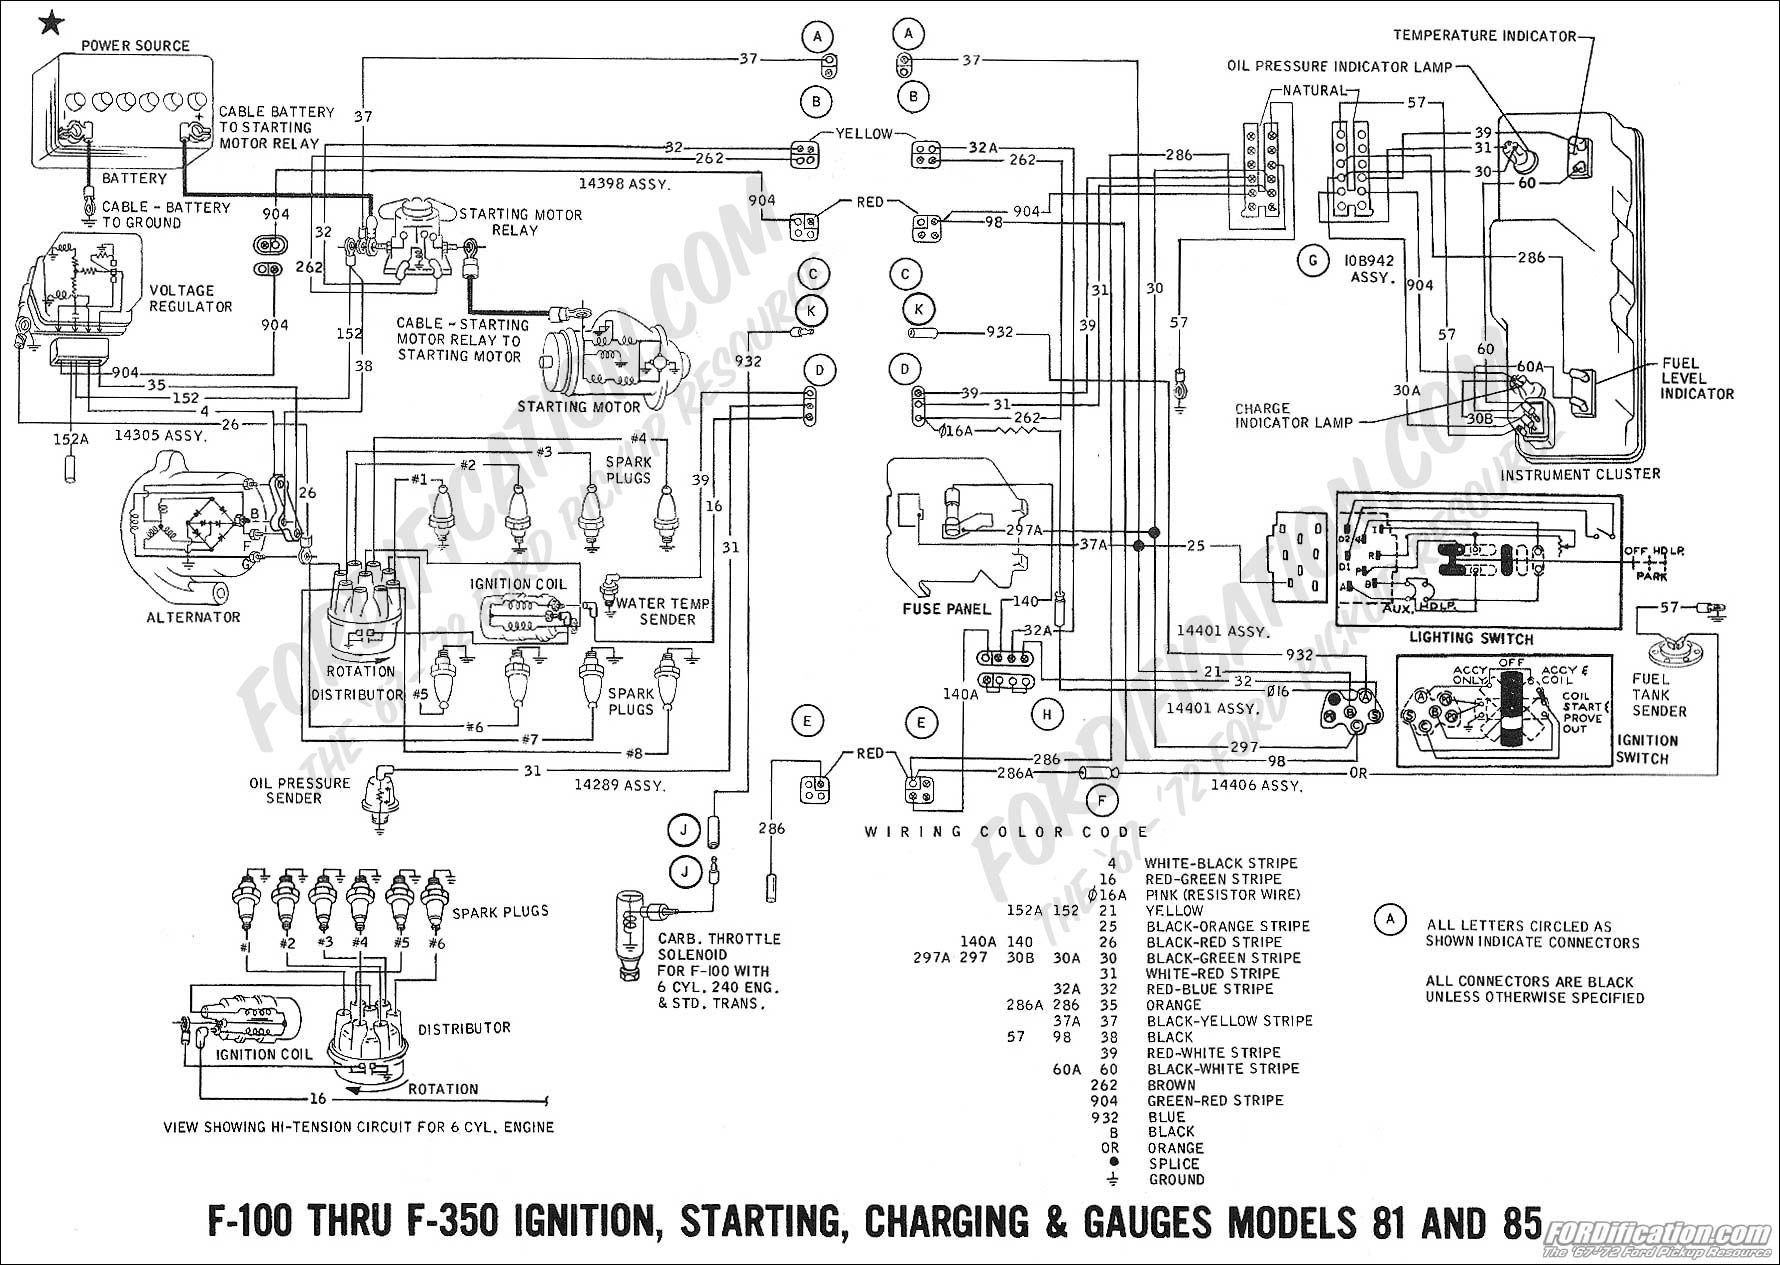 [WRG-2833] 96 Saturn Sl Wiring Diagram